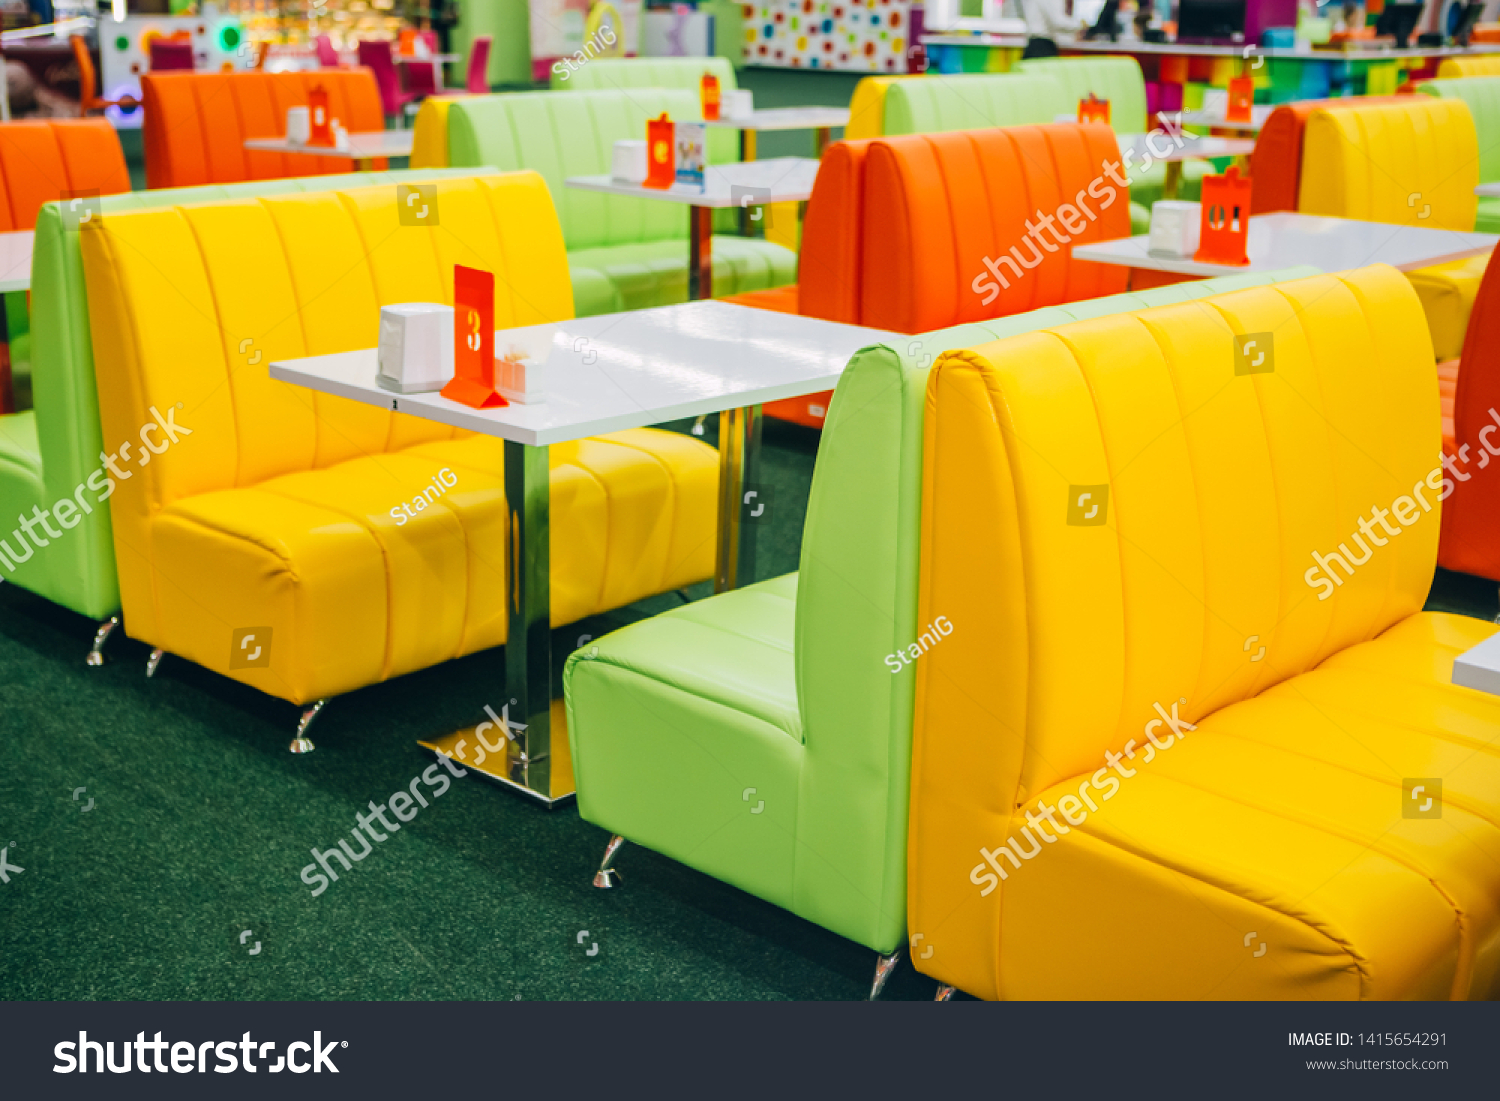 Peachy Childrens Birthday Party Amusement Park Multicolored Stock Caraccident5 Cool Chair Designs And Ideas Caraccident5Info